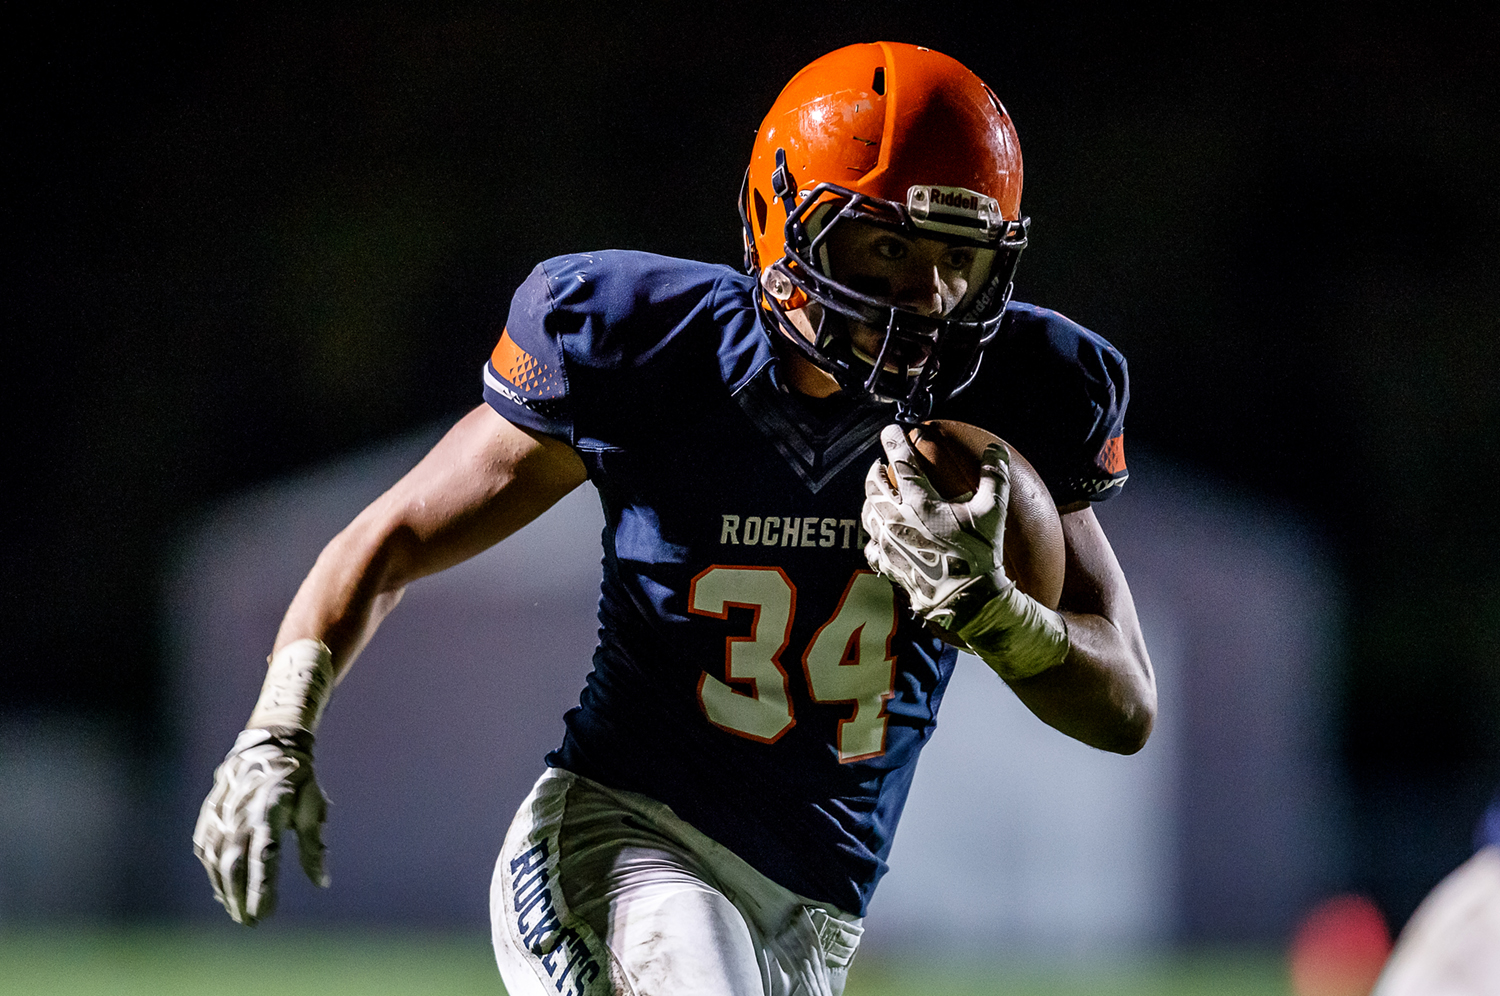 Rochester's Evan Sembell (34) takes off on a rush against Jacksonville during the second half at Rocket Booster Field, Friday, Oct. 10, 2014, in Rochester, Ill. Justin L. Fowler/The State Journal-Register